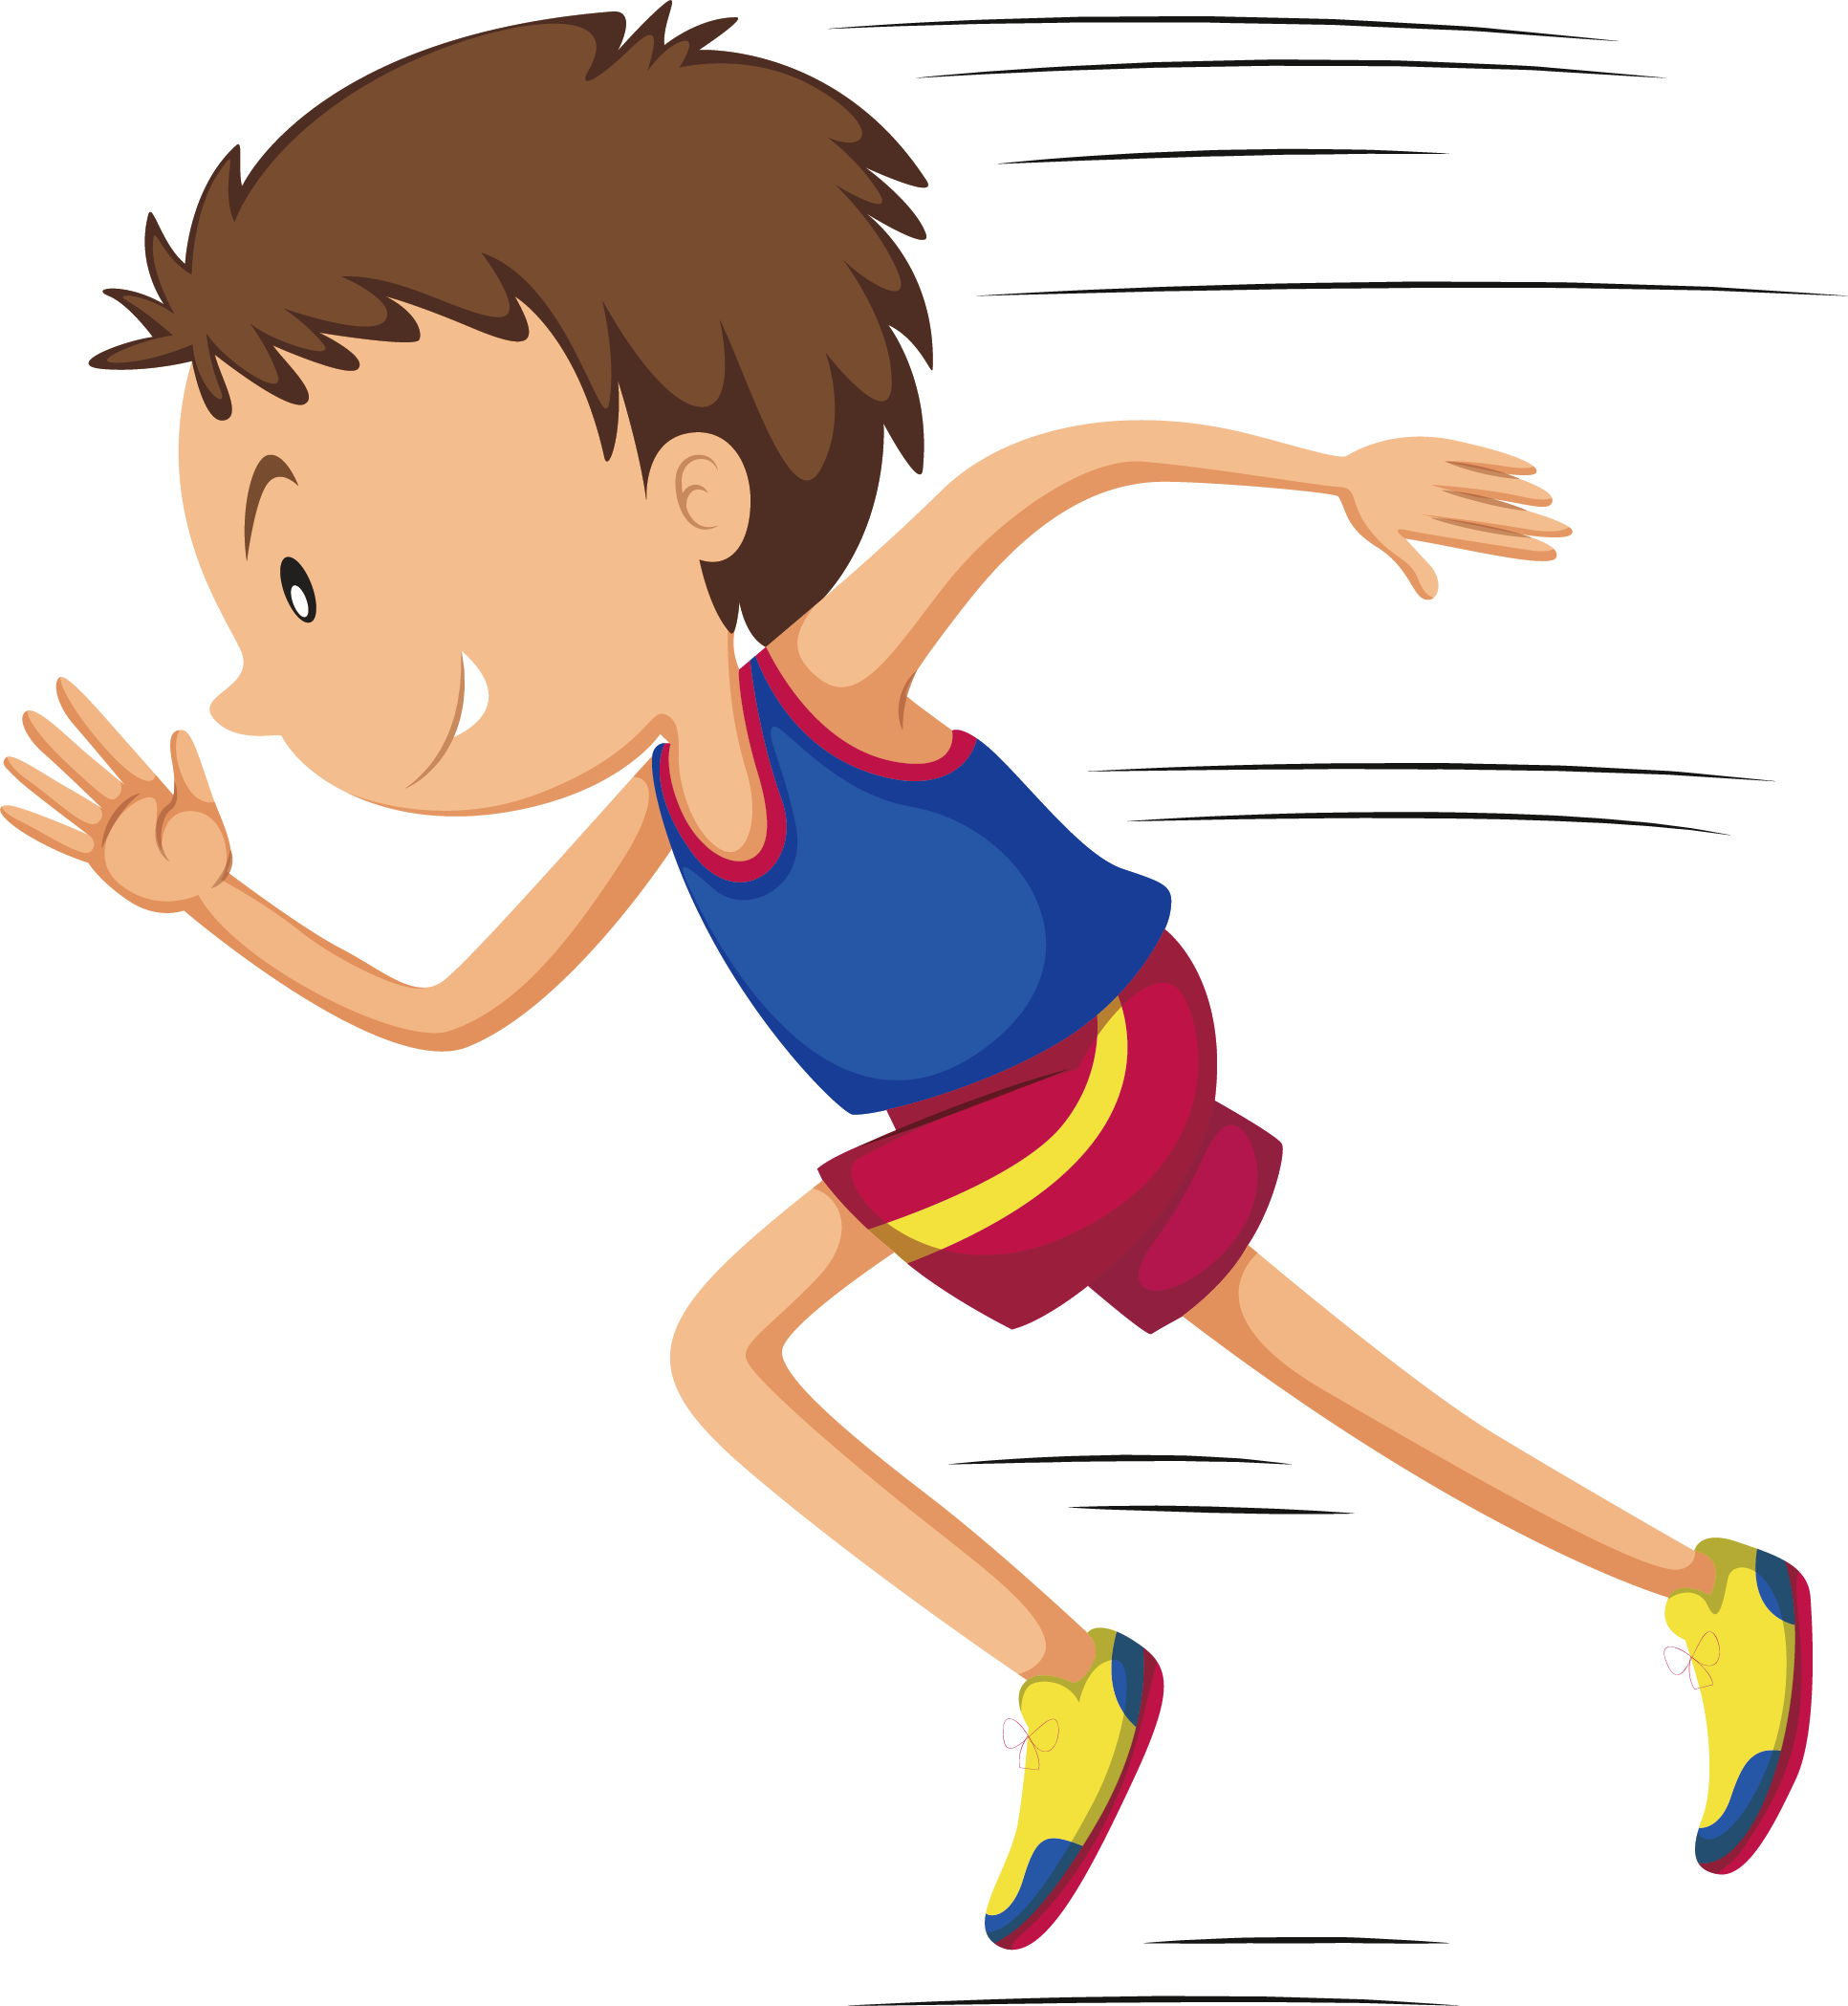 Linear motion running momentum. Jumping clipart athletic person